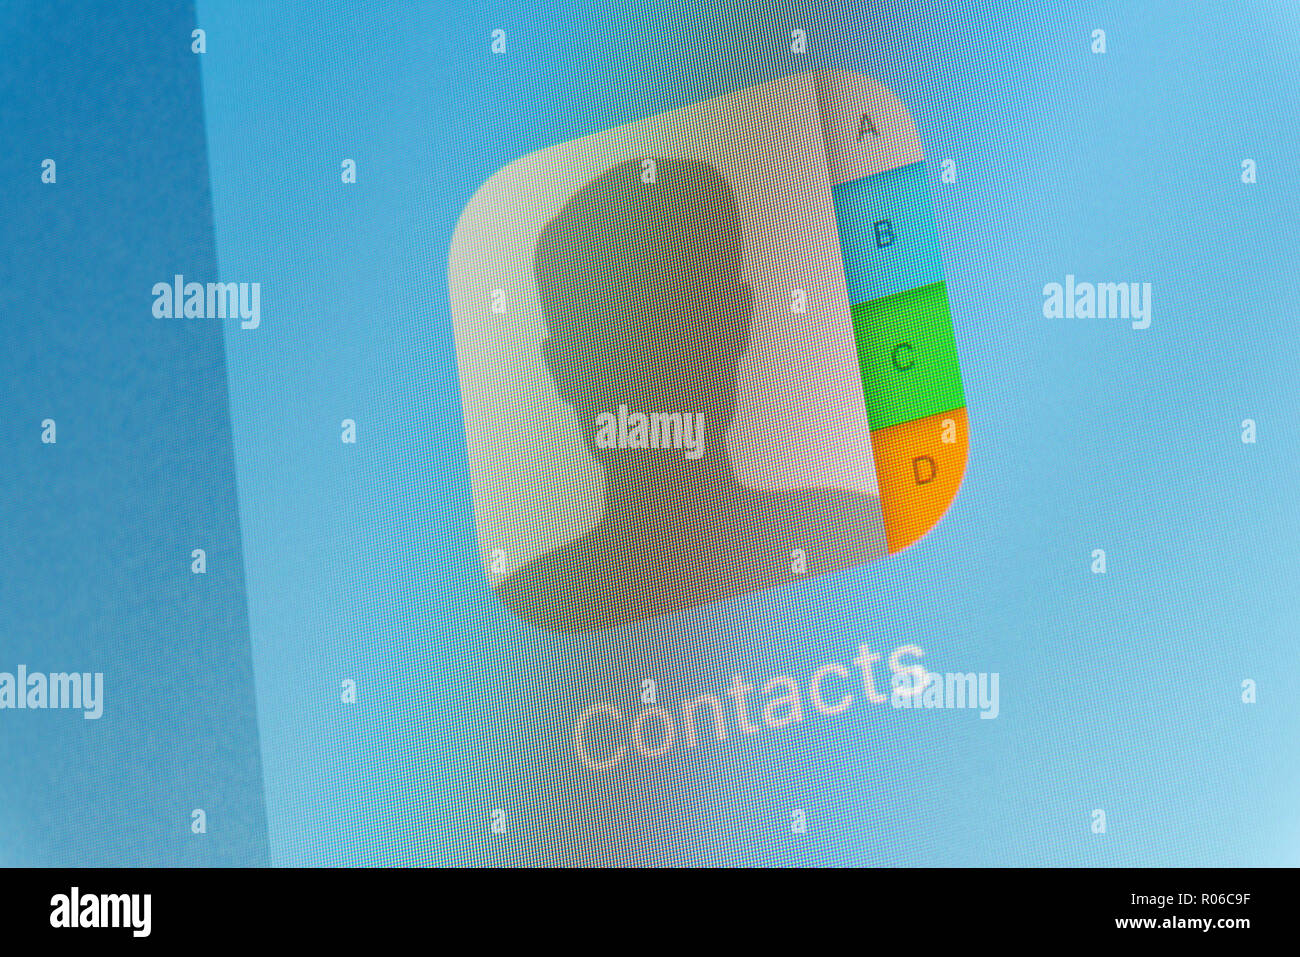 Apple Contacts App on cellphone screen - Stock Image